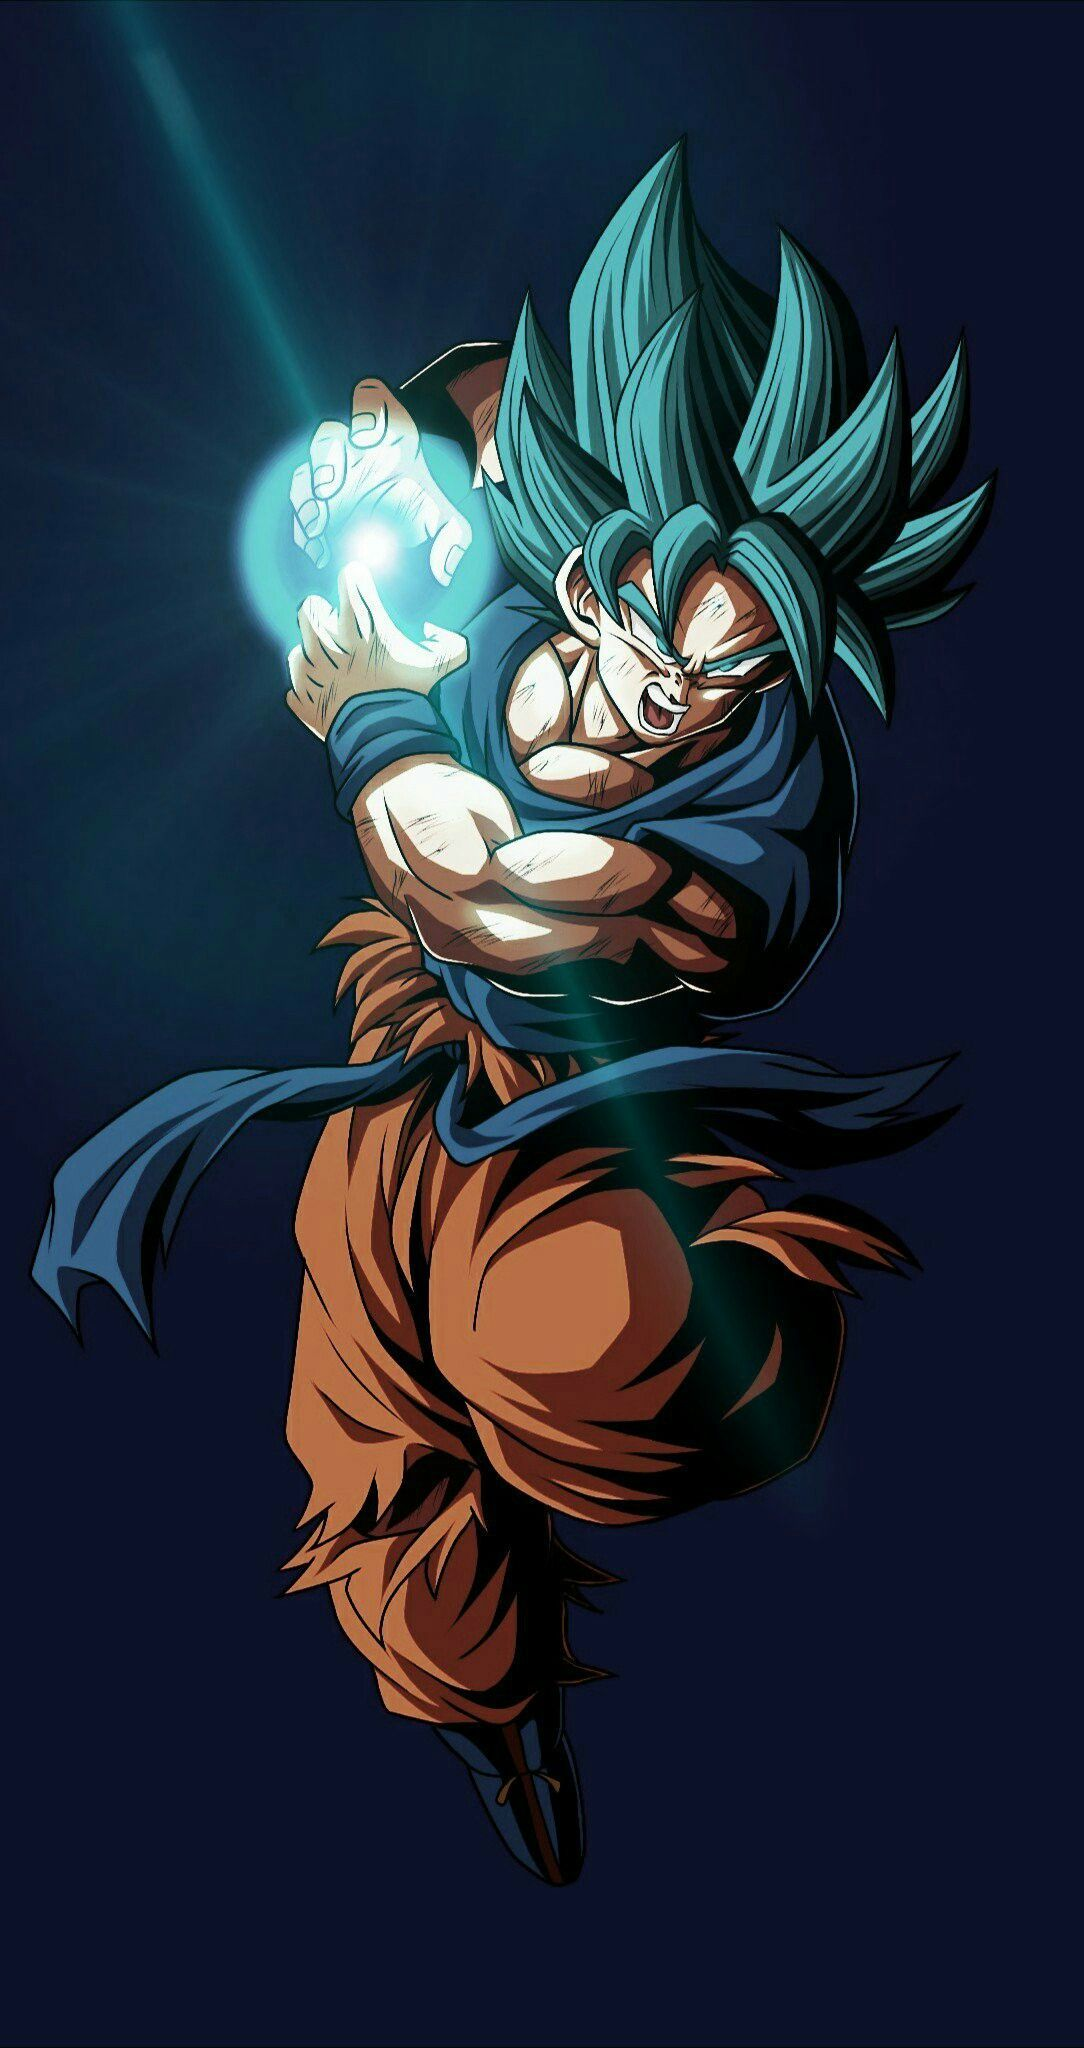 Most Great Anime Wallpaper IPhone Dragon Ball Goku super